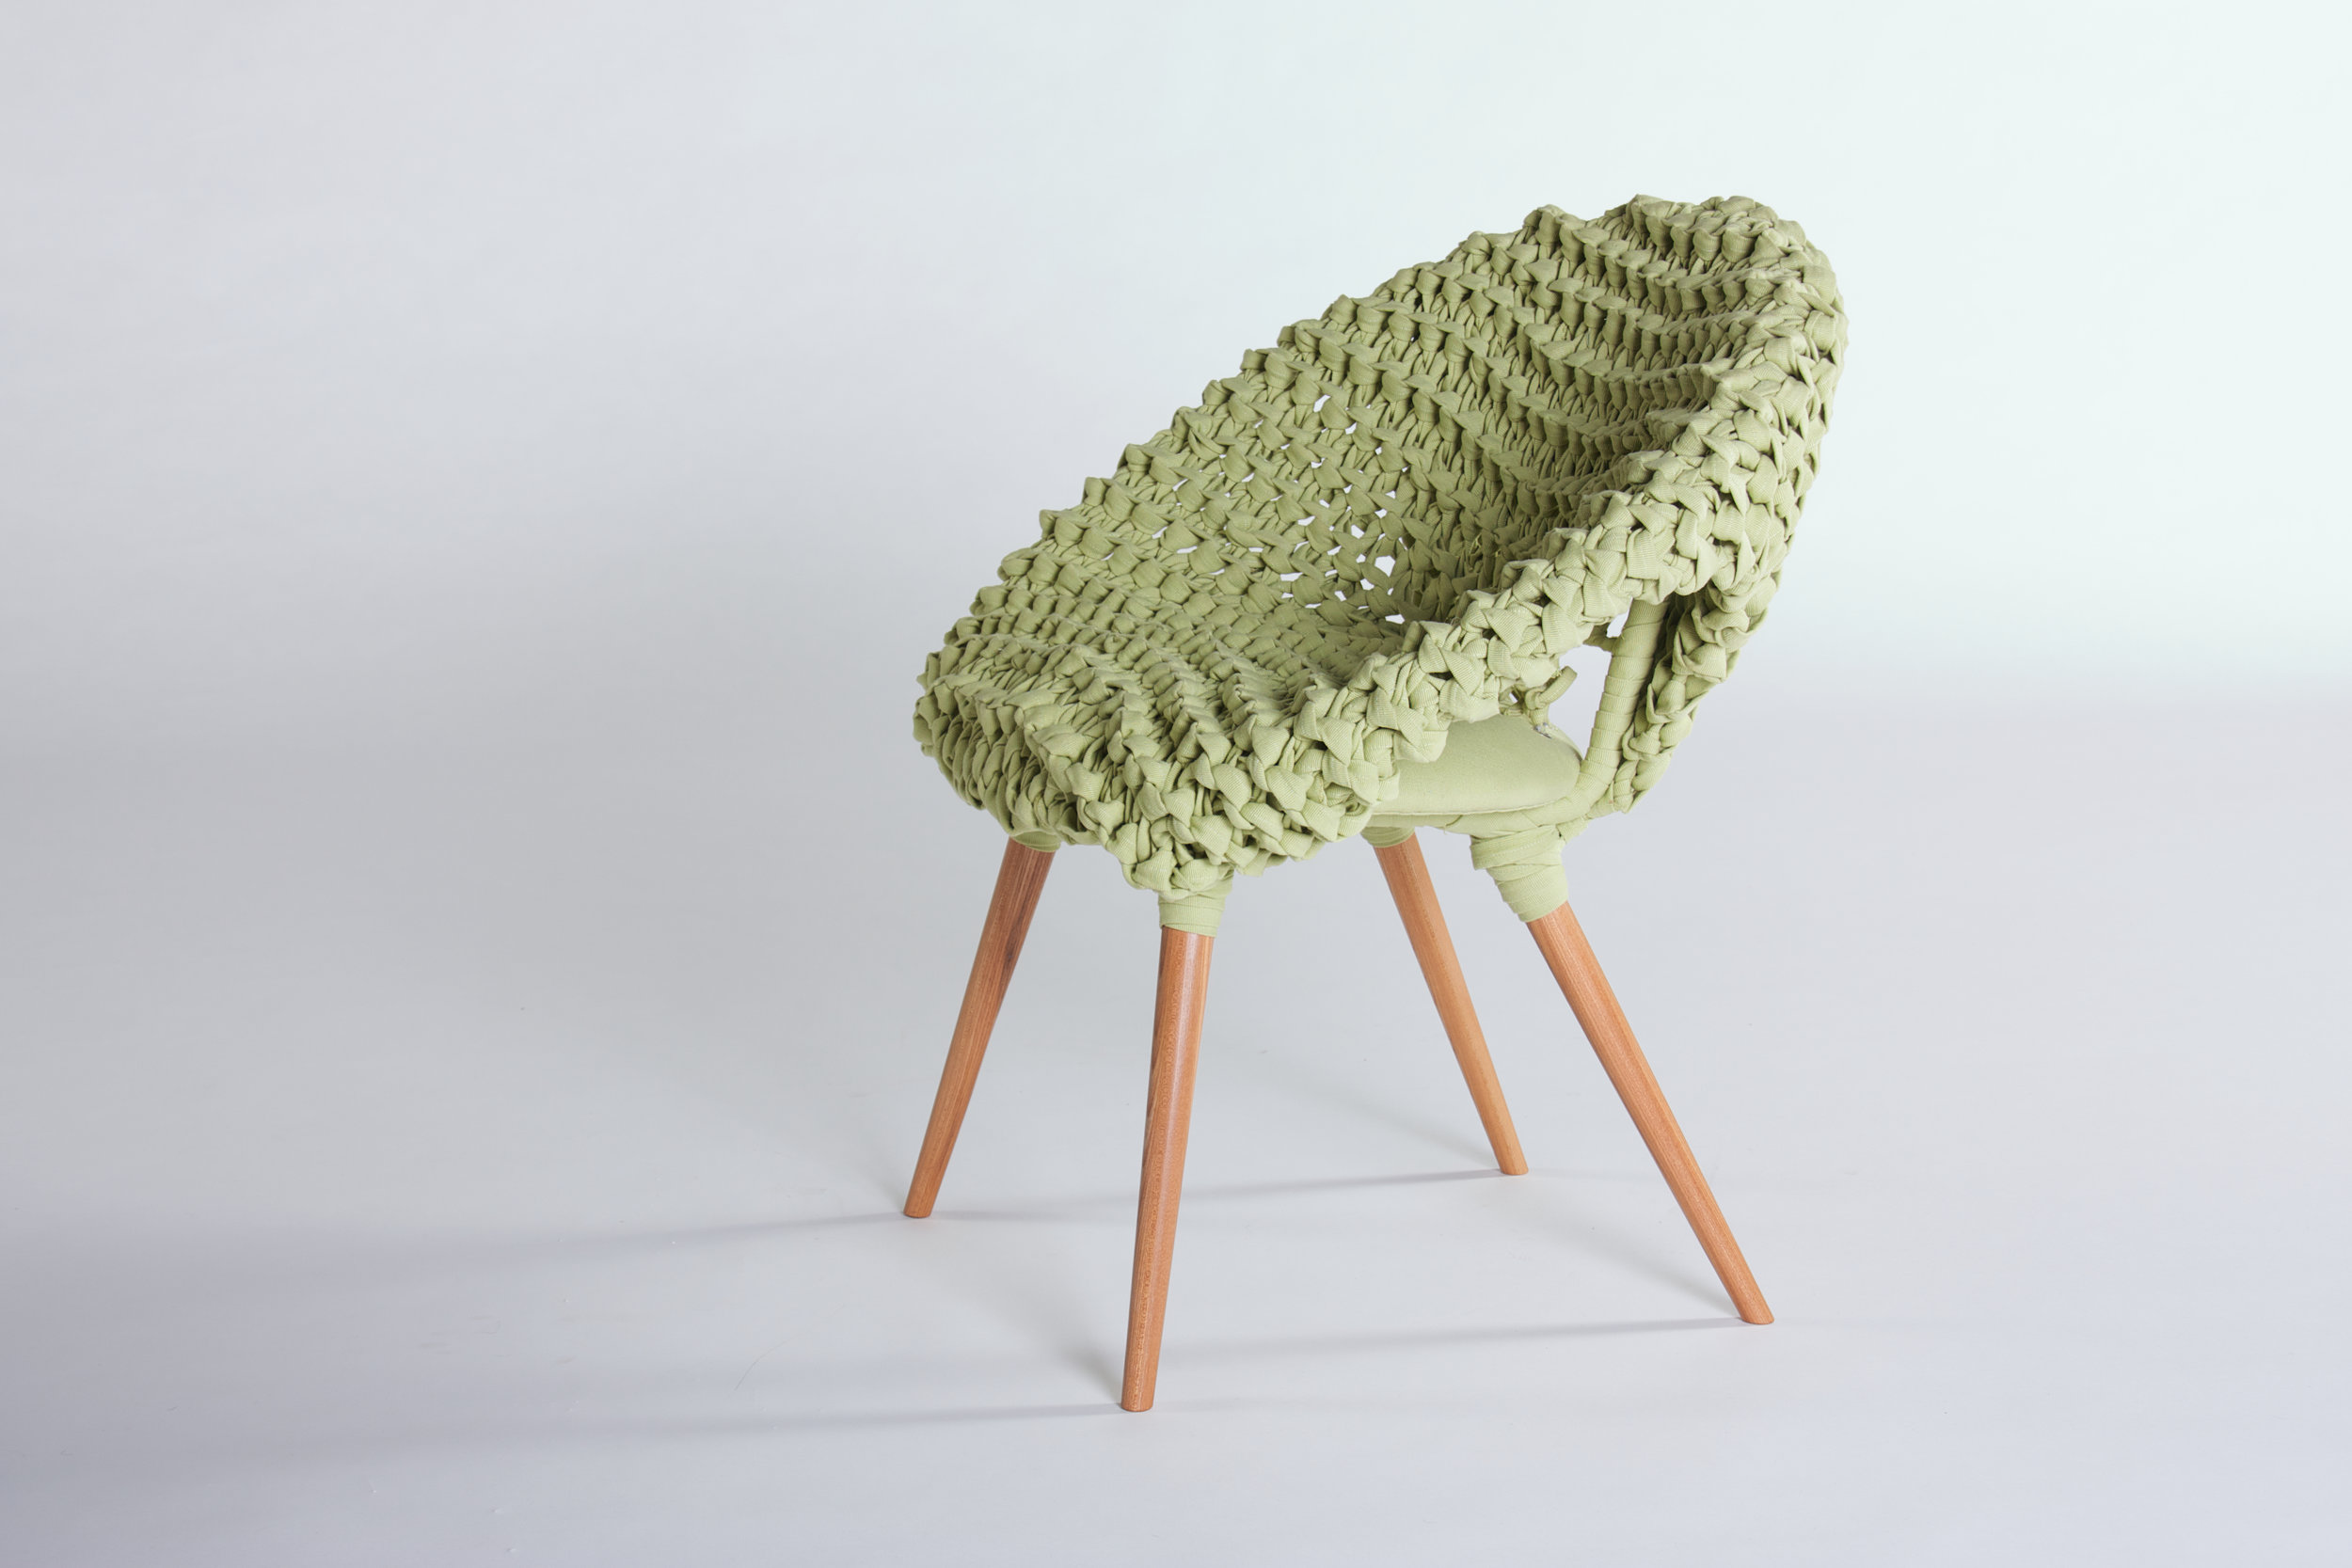 knitted-chair-side-view.jpg